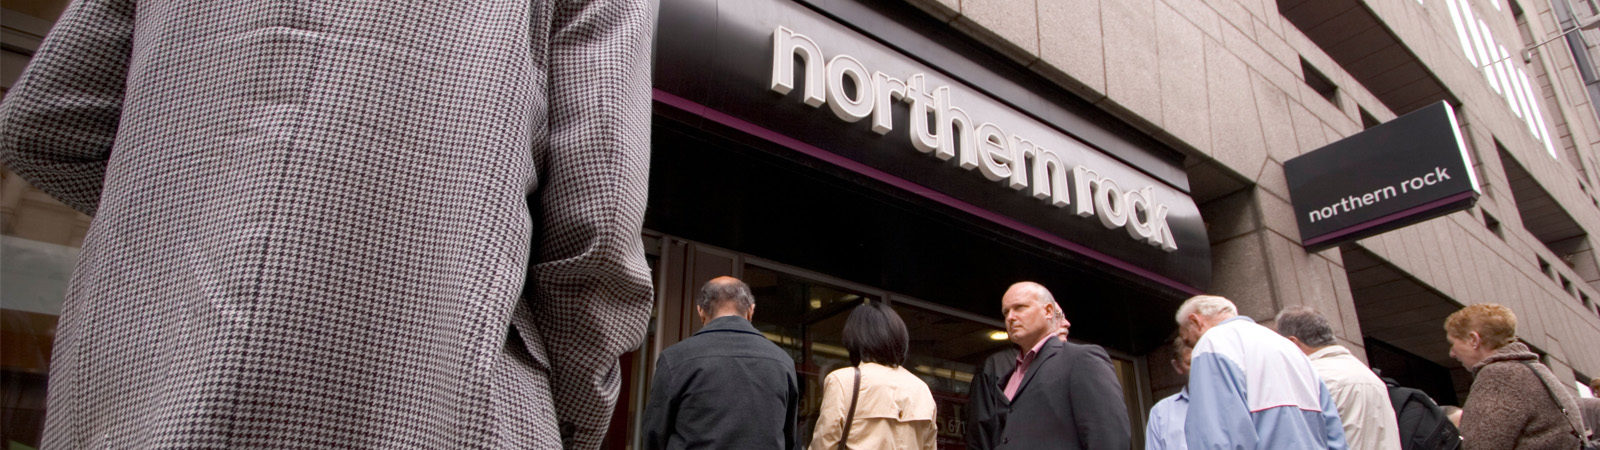 Customers queuing outside Northern Rock bank during crisis